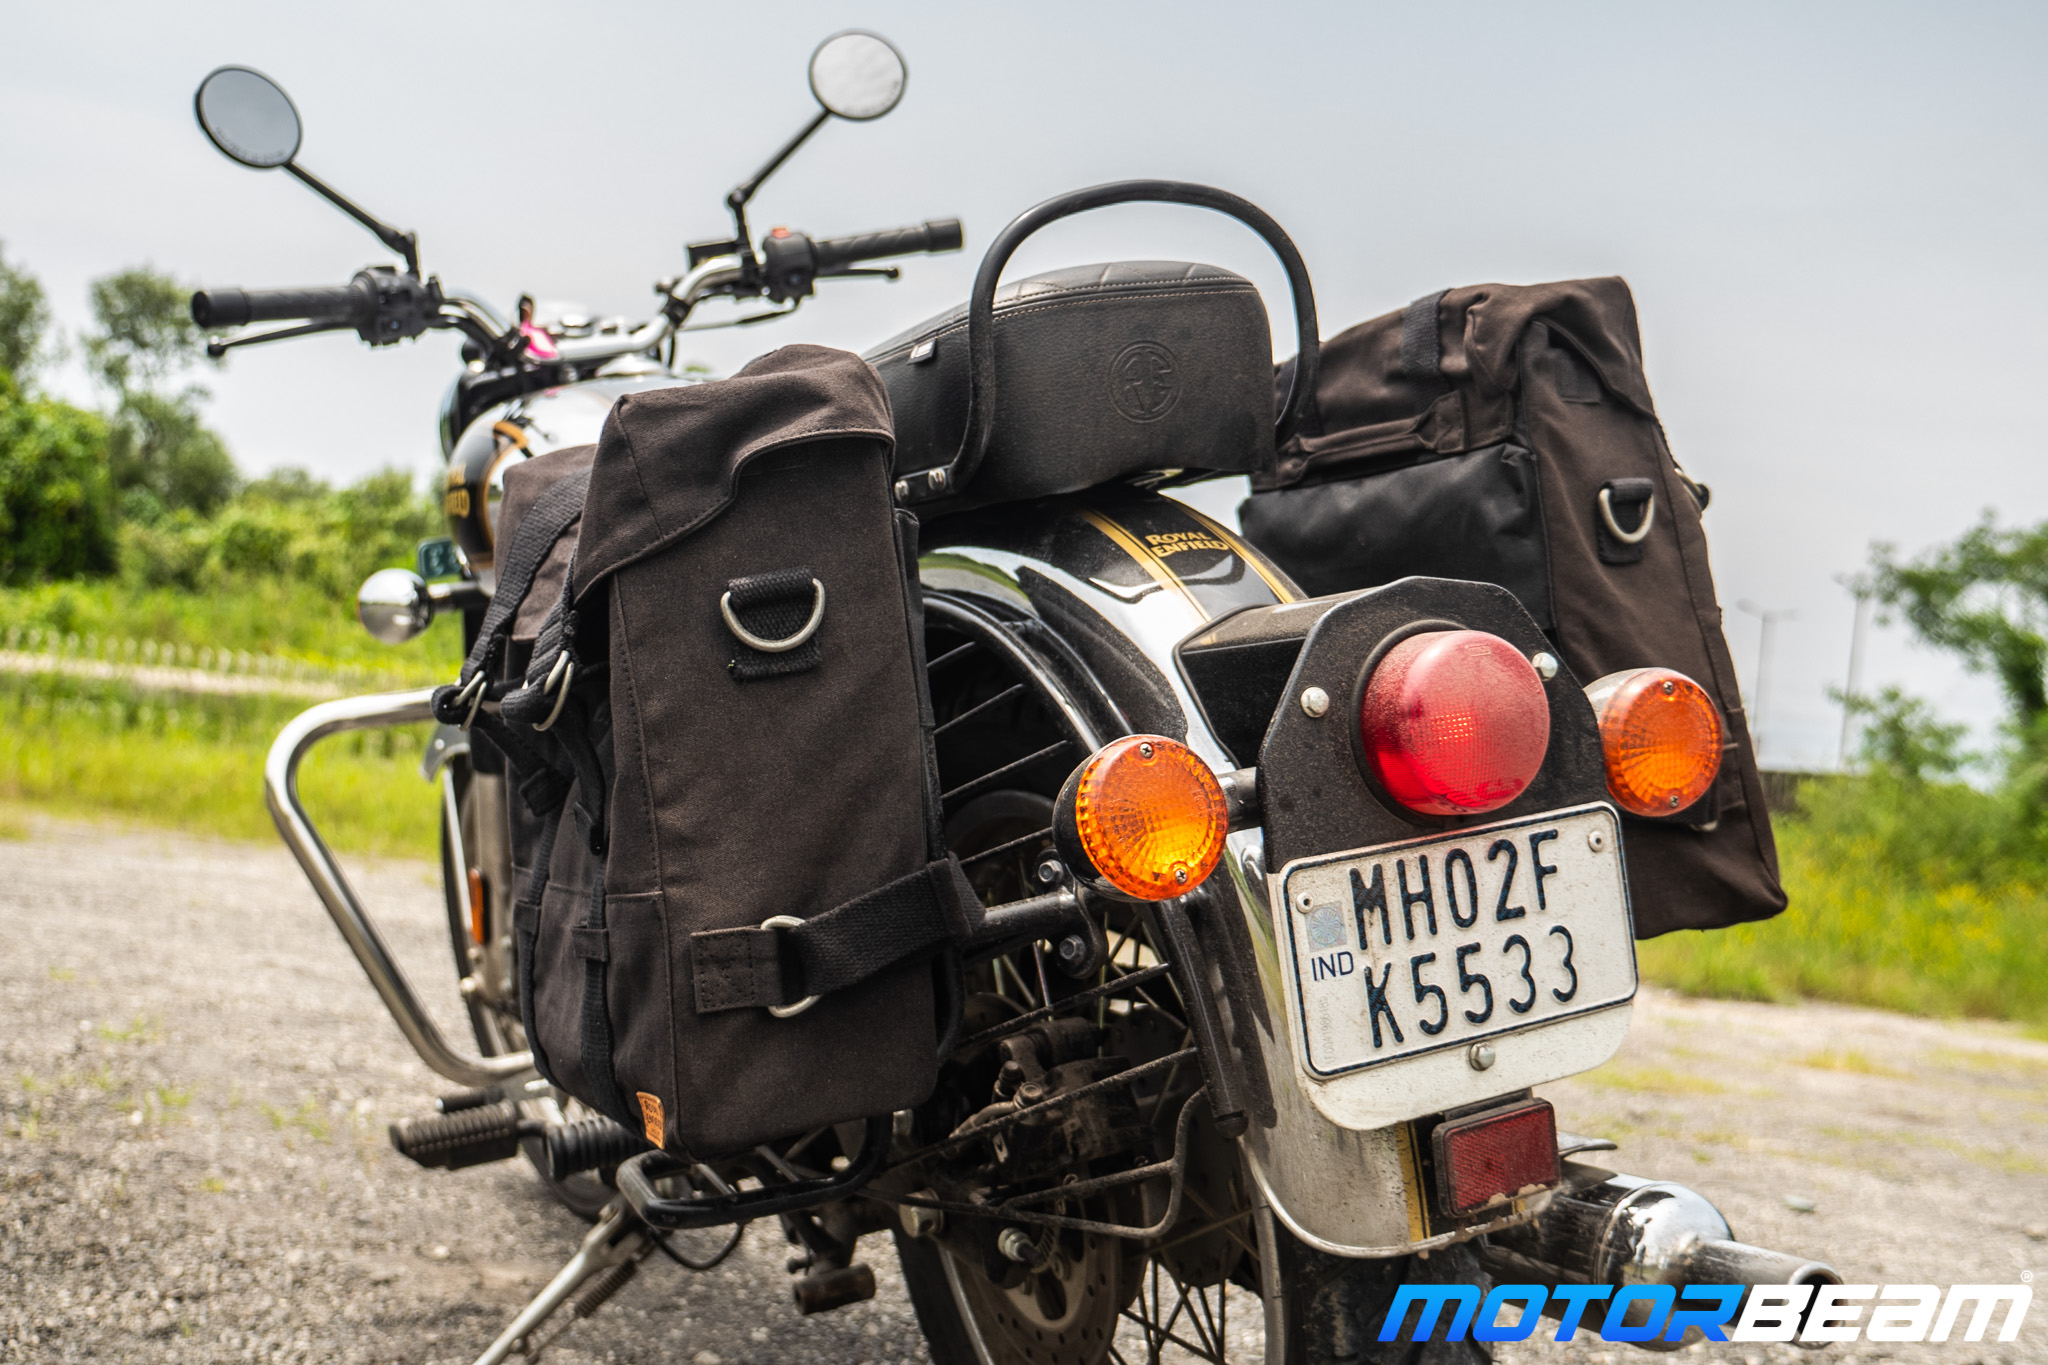 2020 Royal Enfield Classic 350 Review 30